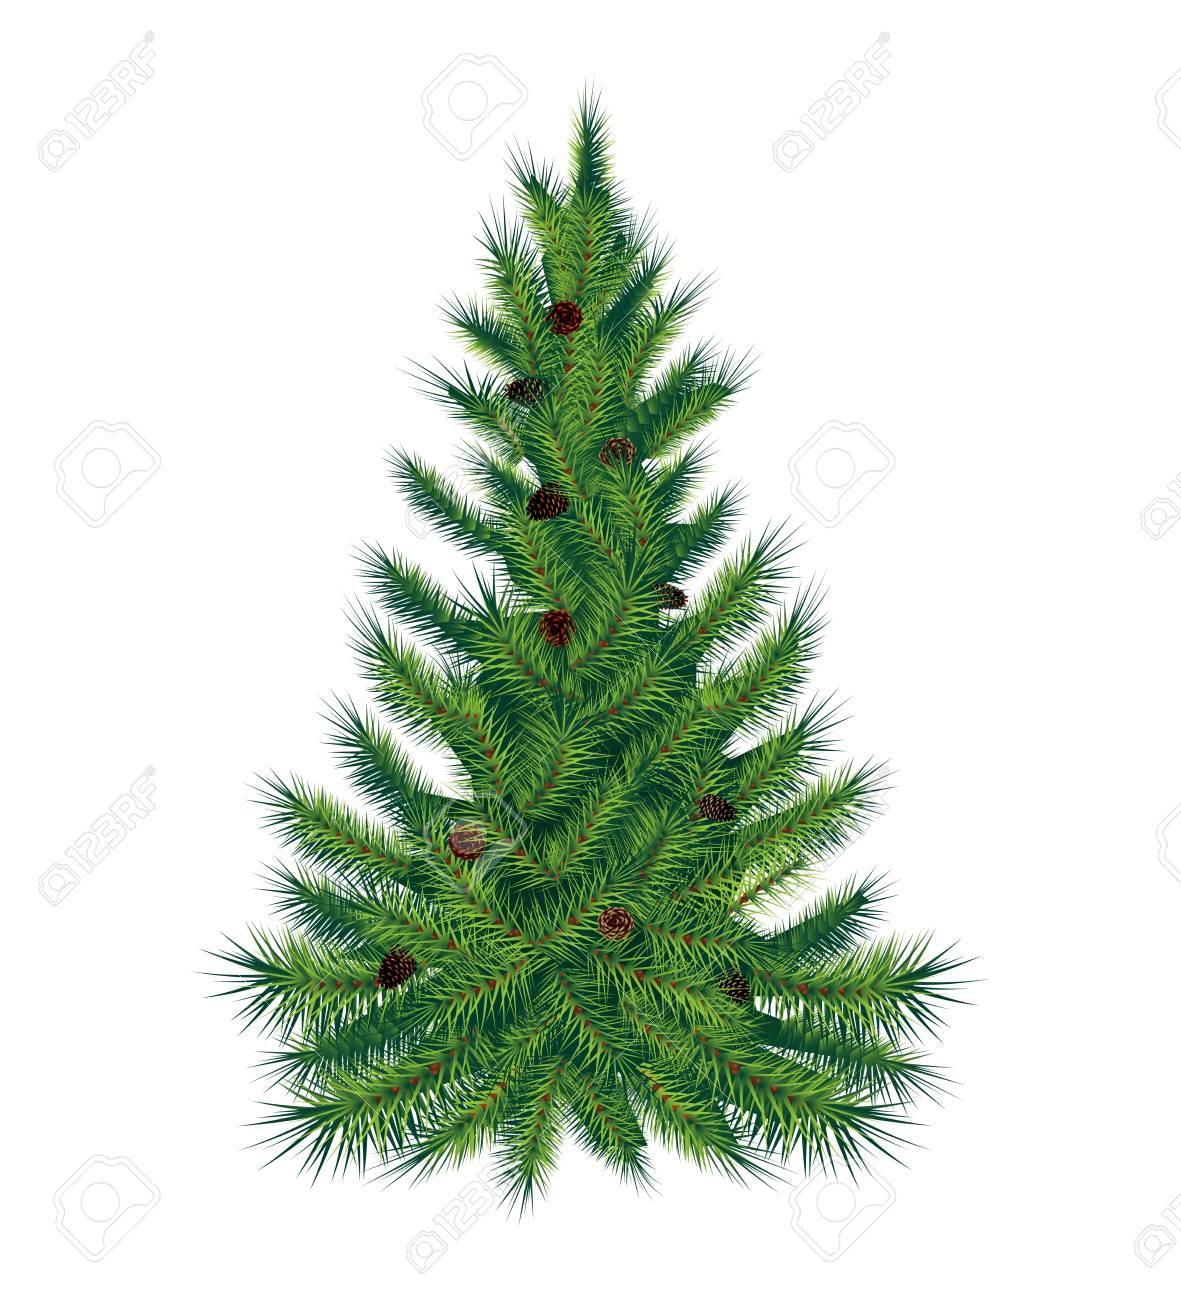 Single pine tree, isolated on white background. Vector illustration. High quality - 71759552